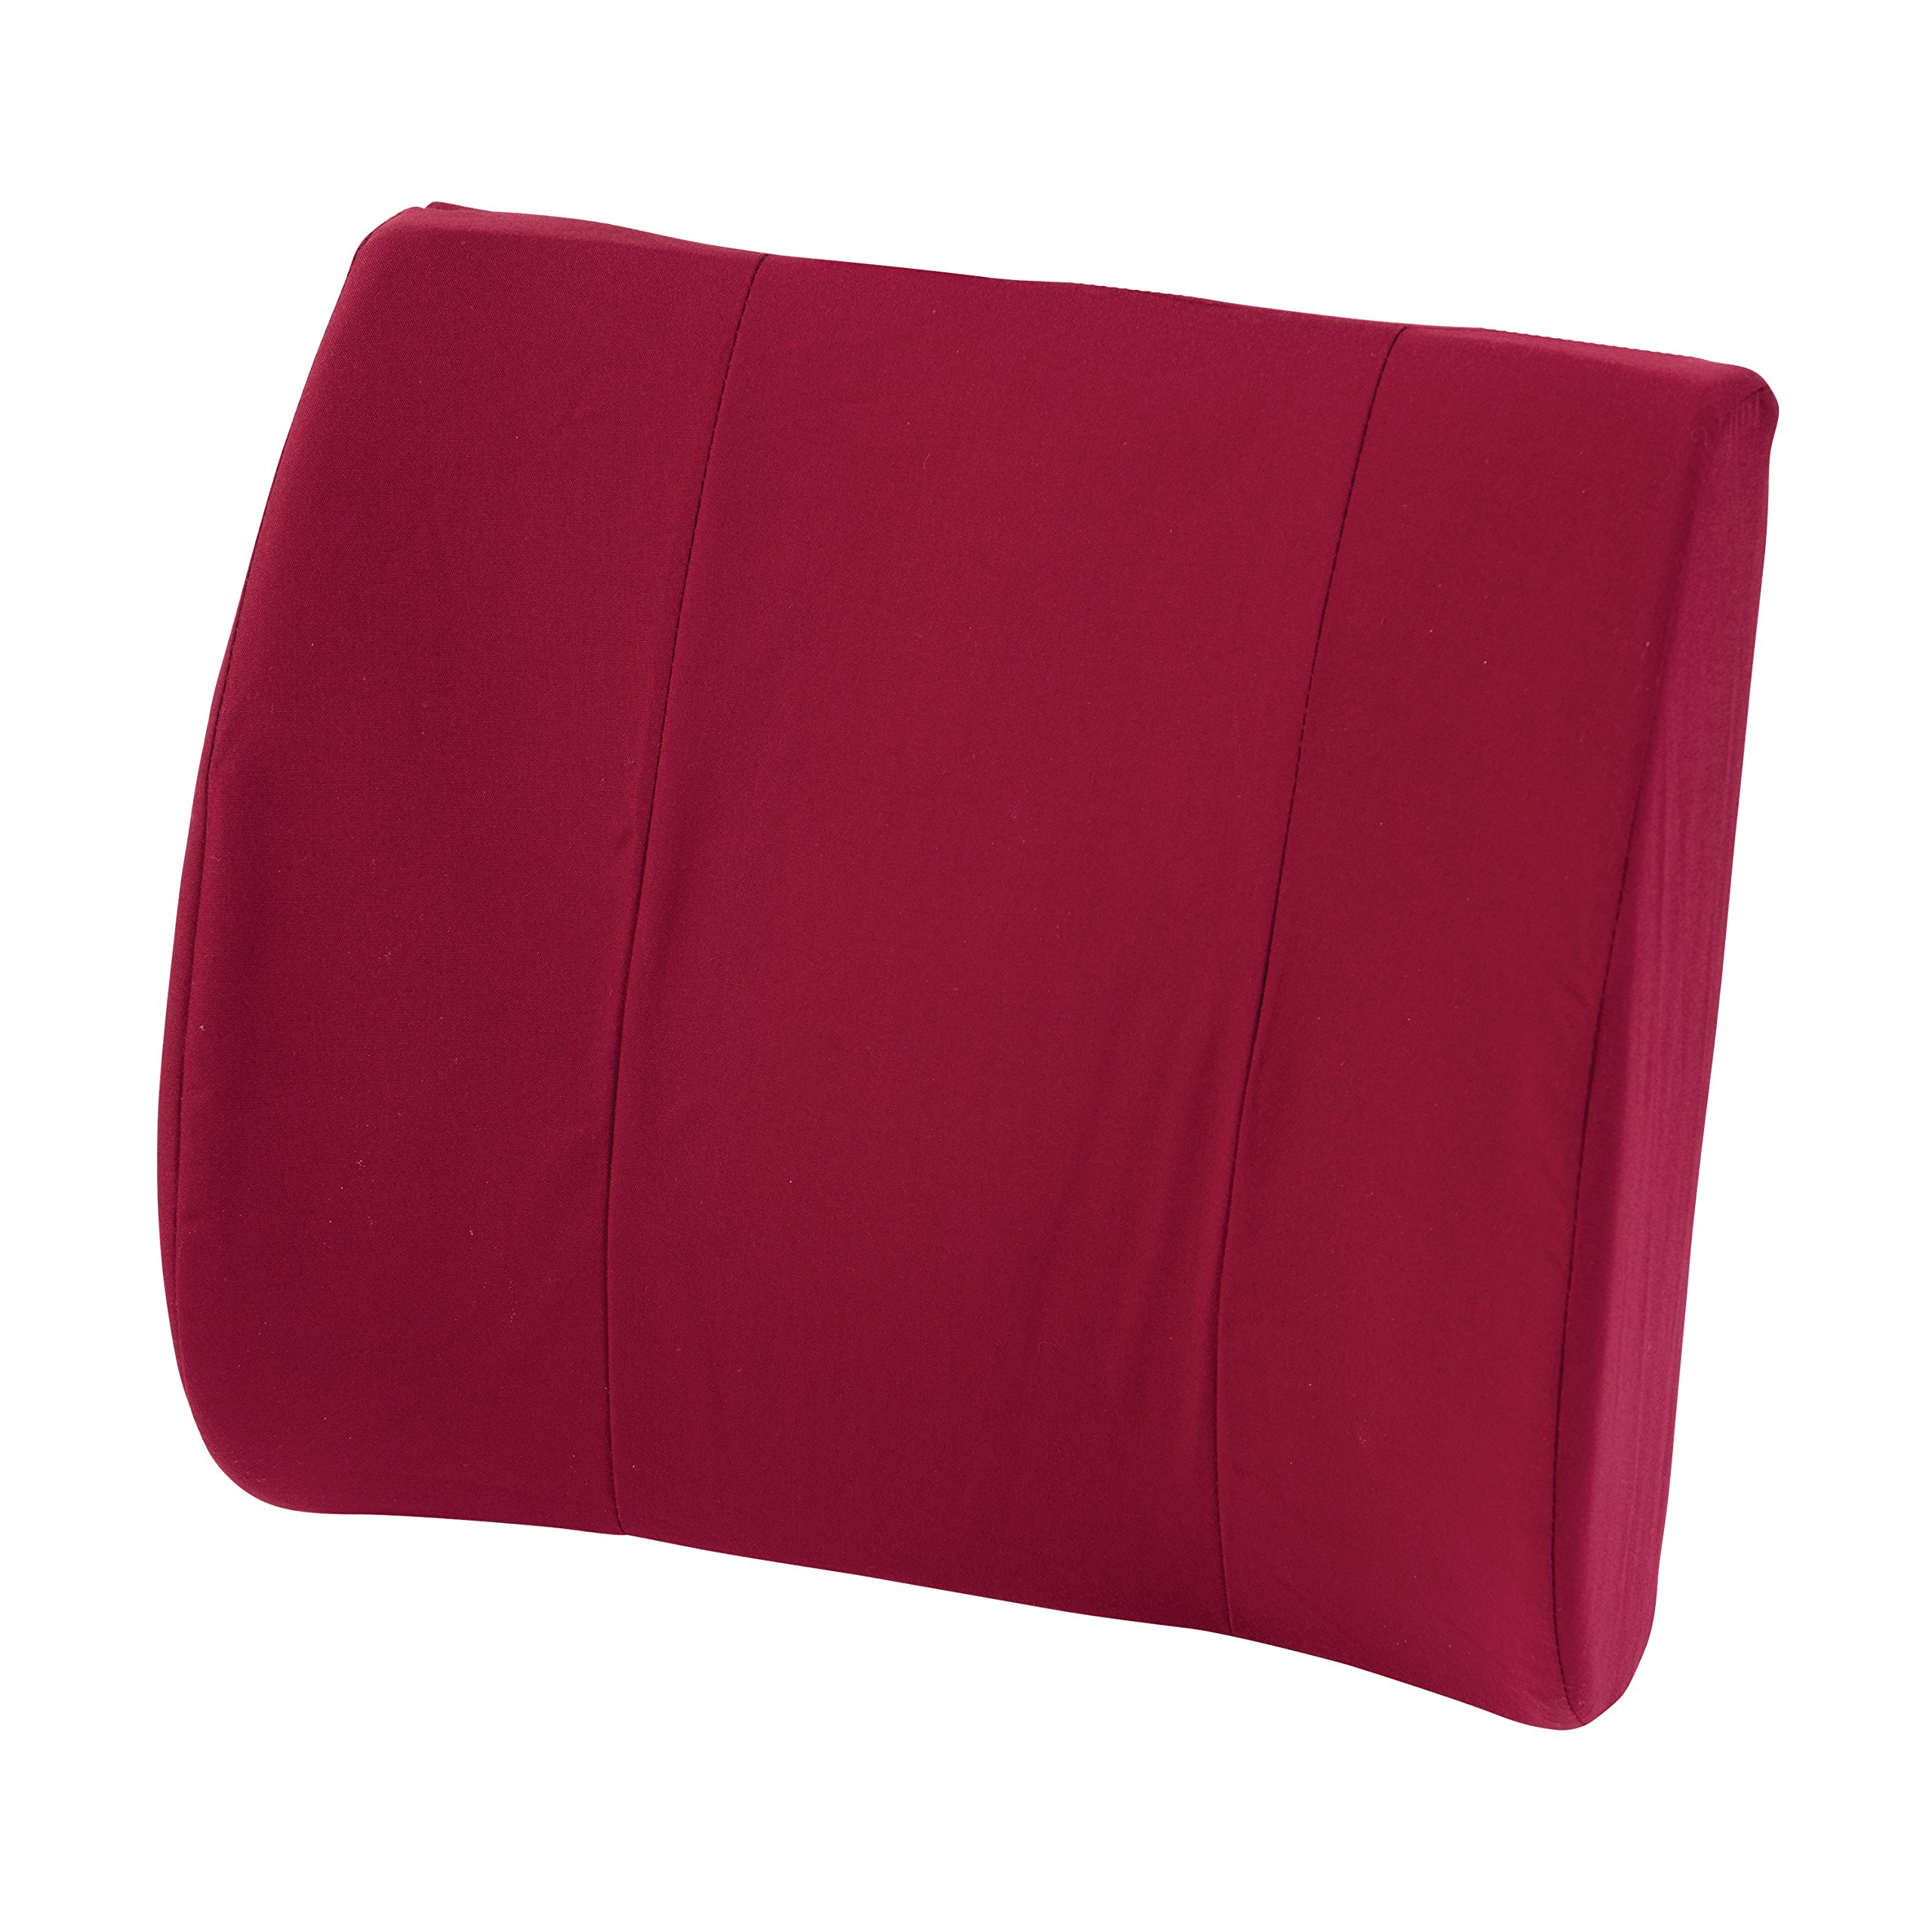 Duro-Med Relax-A-Bac, Lumbar Cushion, Lower Back Support Pillow With Wooden Lumbar Support Board and Alignment Strap, Burgundy